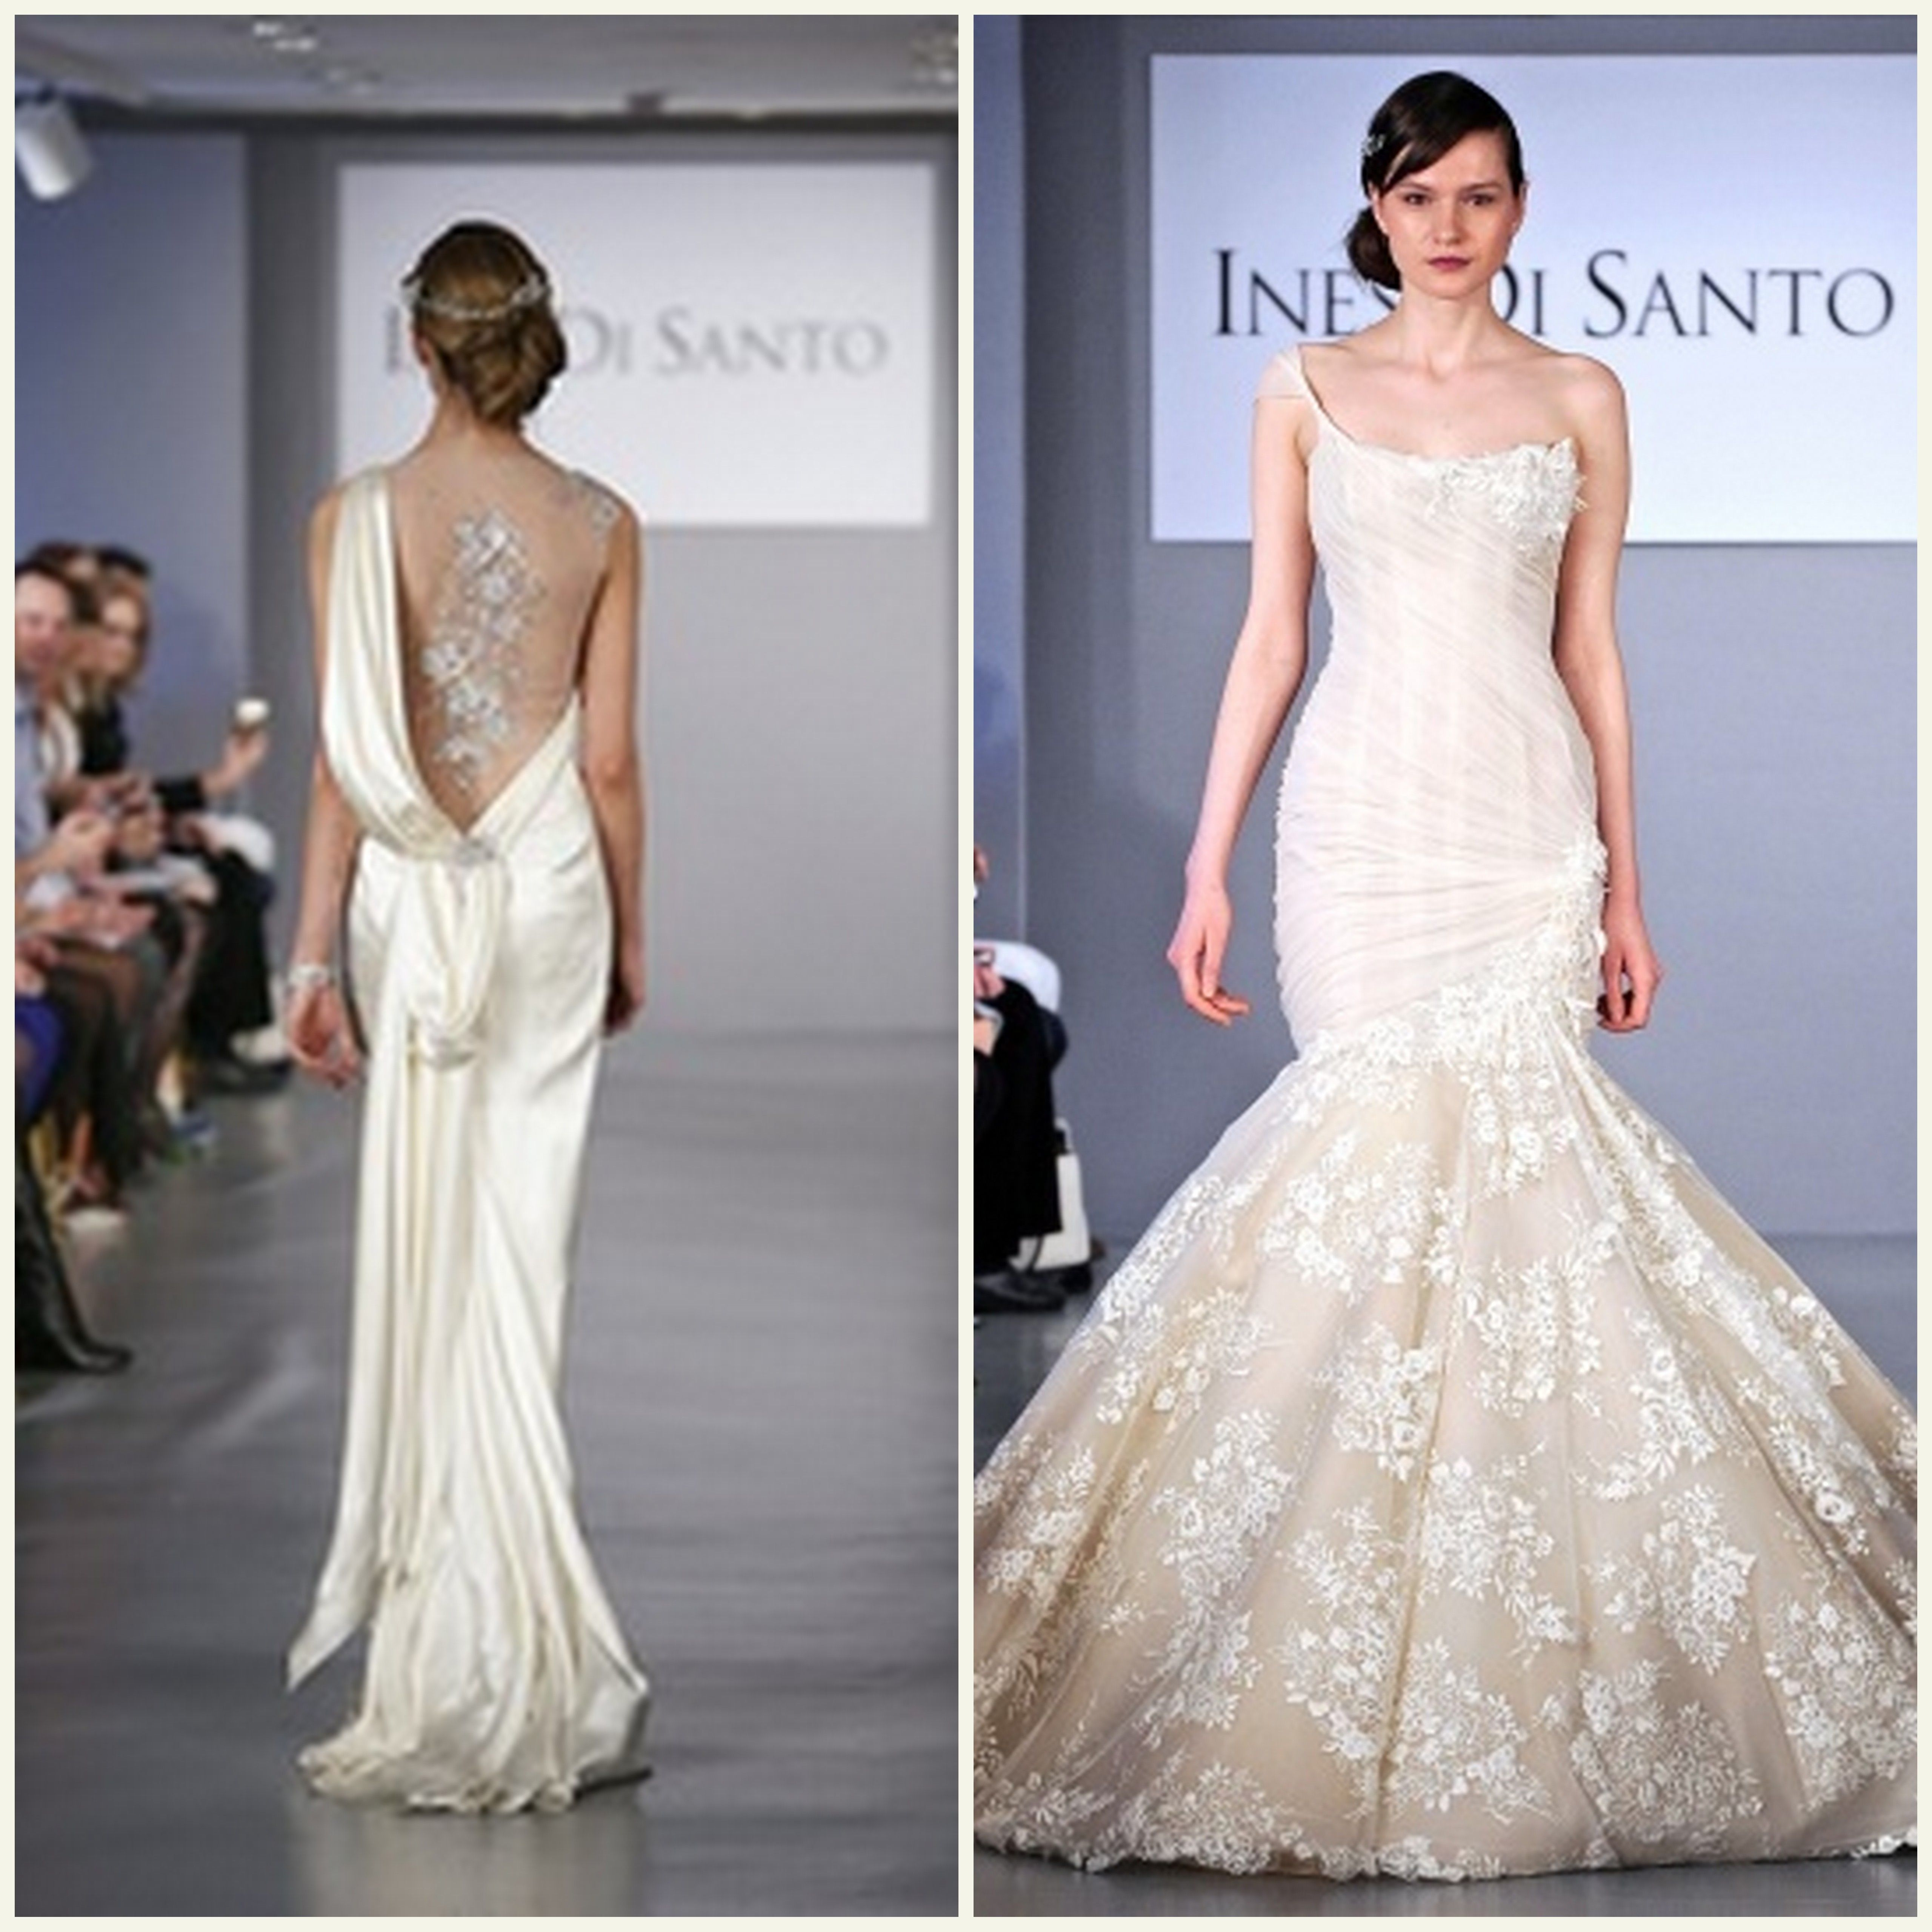 Funky Wedding Gowns: Best Of Spring 2014 Wedding Dresses